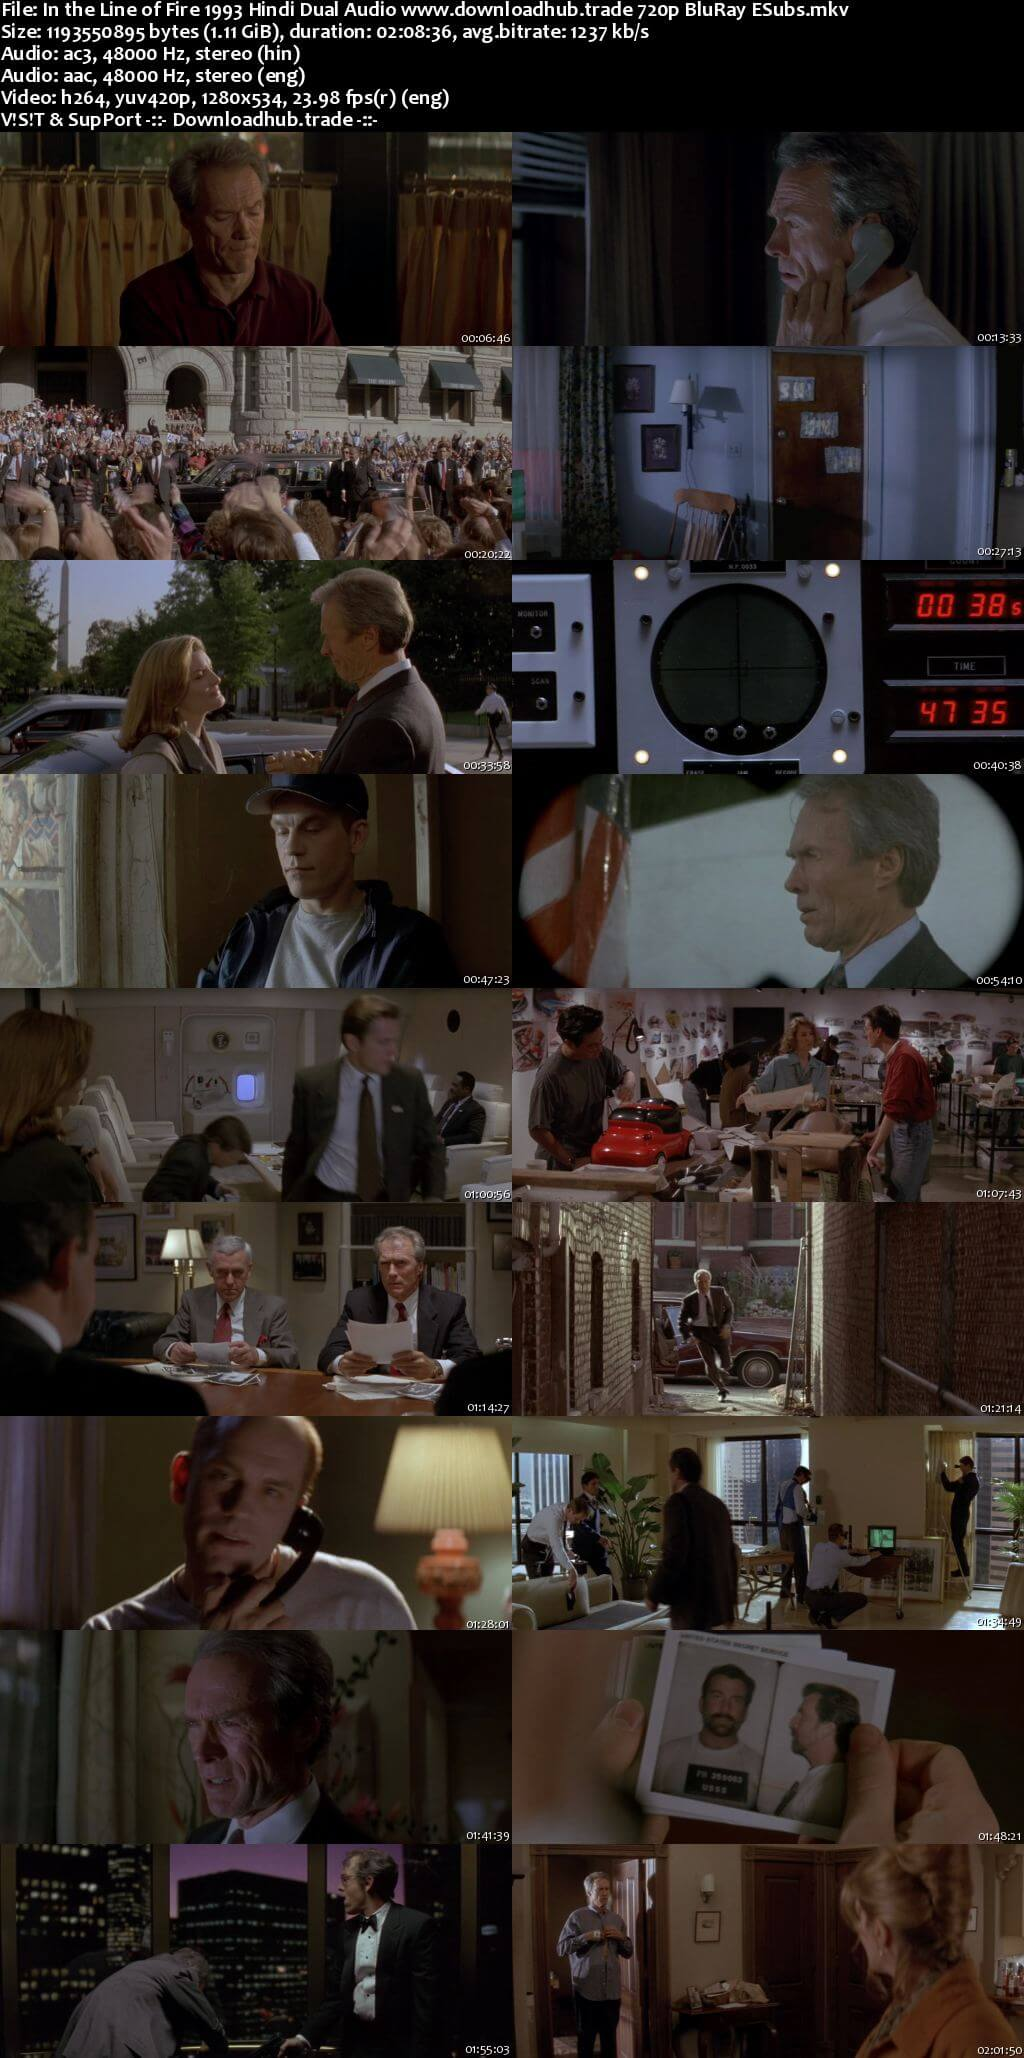 In the Line of Fire 1993 Hindi Dual Audio 720p BluRay ESubs